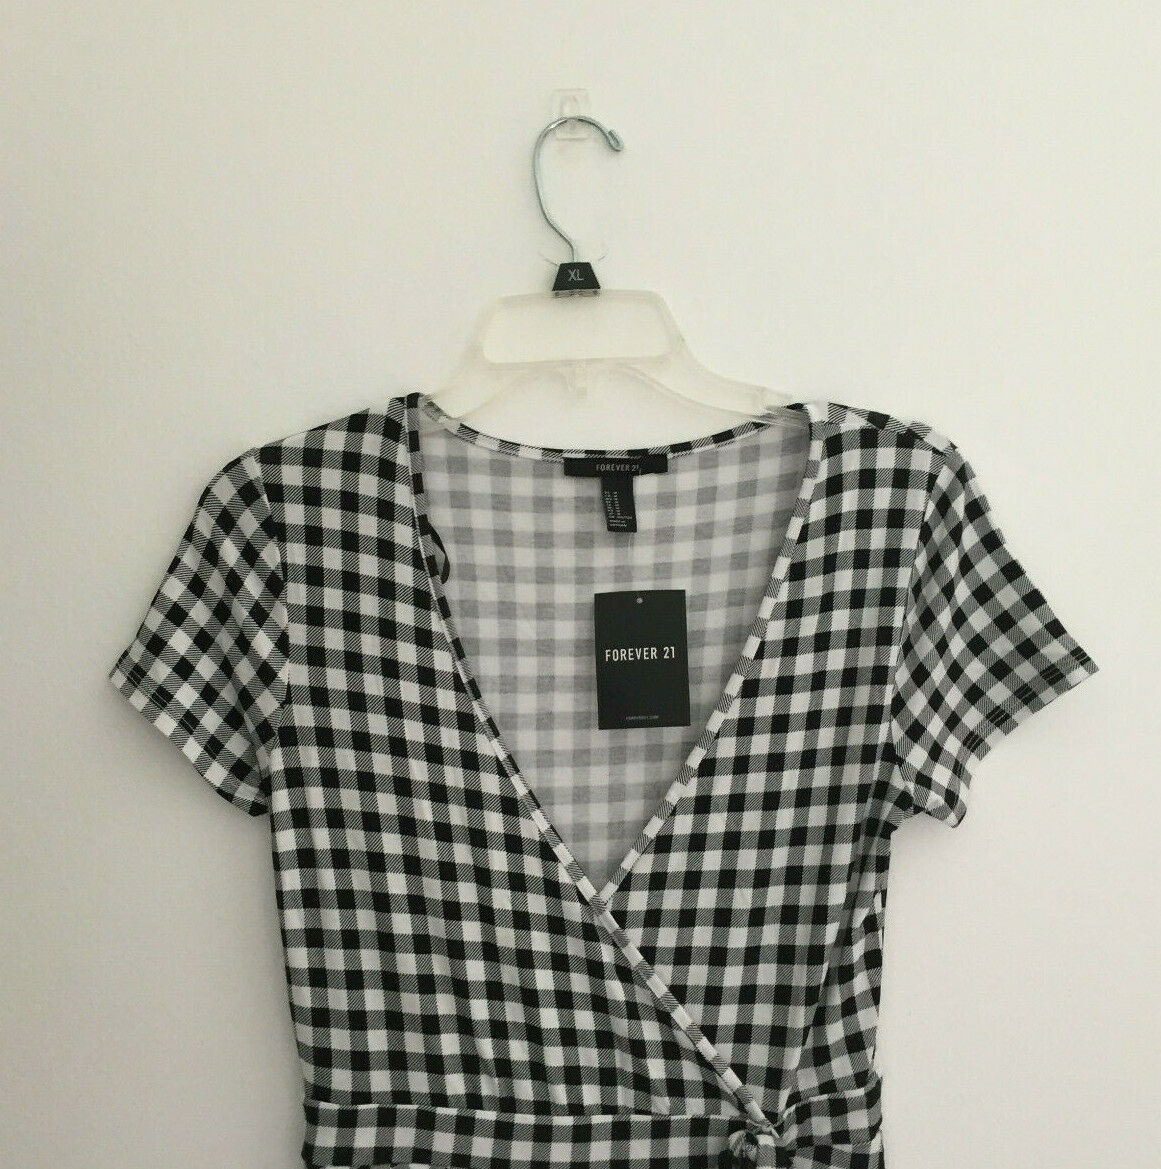 Forever 21 Black Plaid Romper sz Medium New NWT